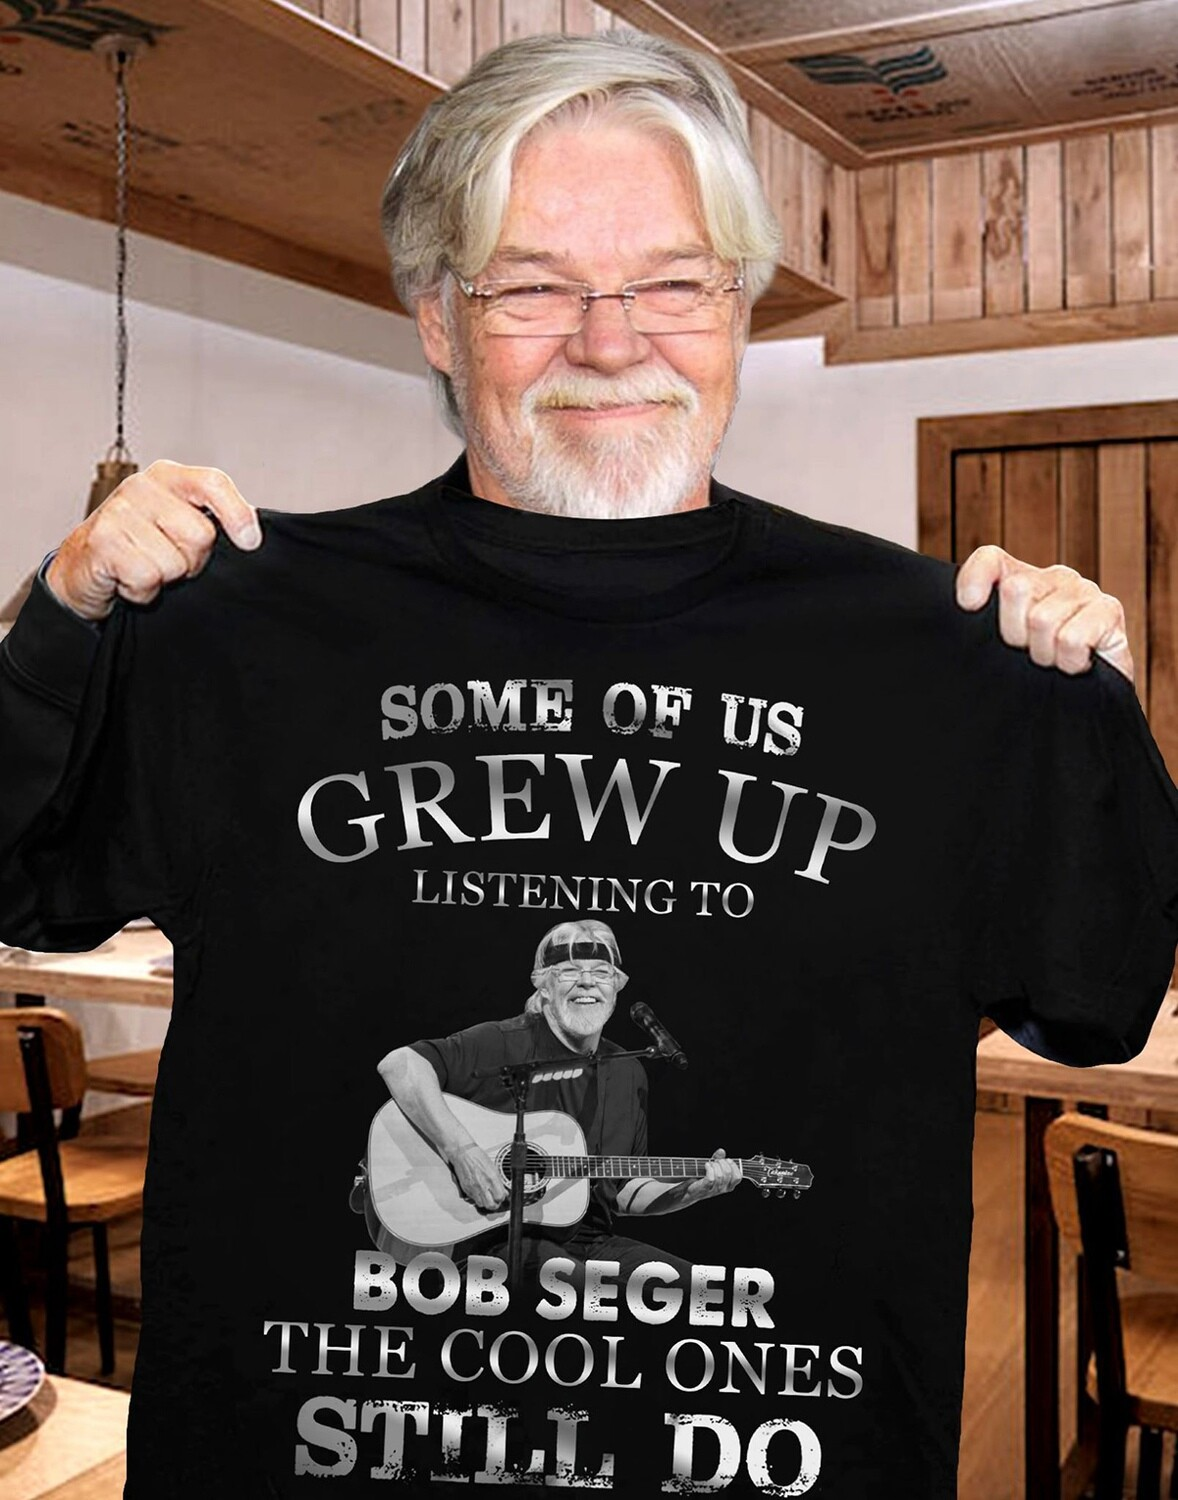 Bob Seger Shirt Vintage tshirt 1980 The Silver Bullet Band 1980s Against the Wind Heartland Pop Rock and Roll Fire Lake You'll Accomp'ny Me, Silver Bullet Tours Tshirt,Unisex Short, Bob Seger tee